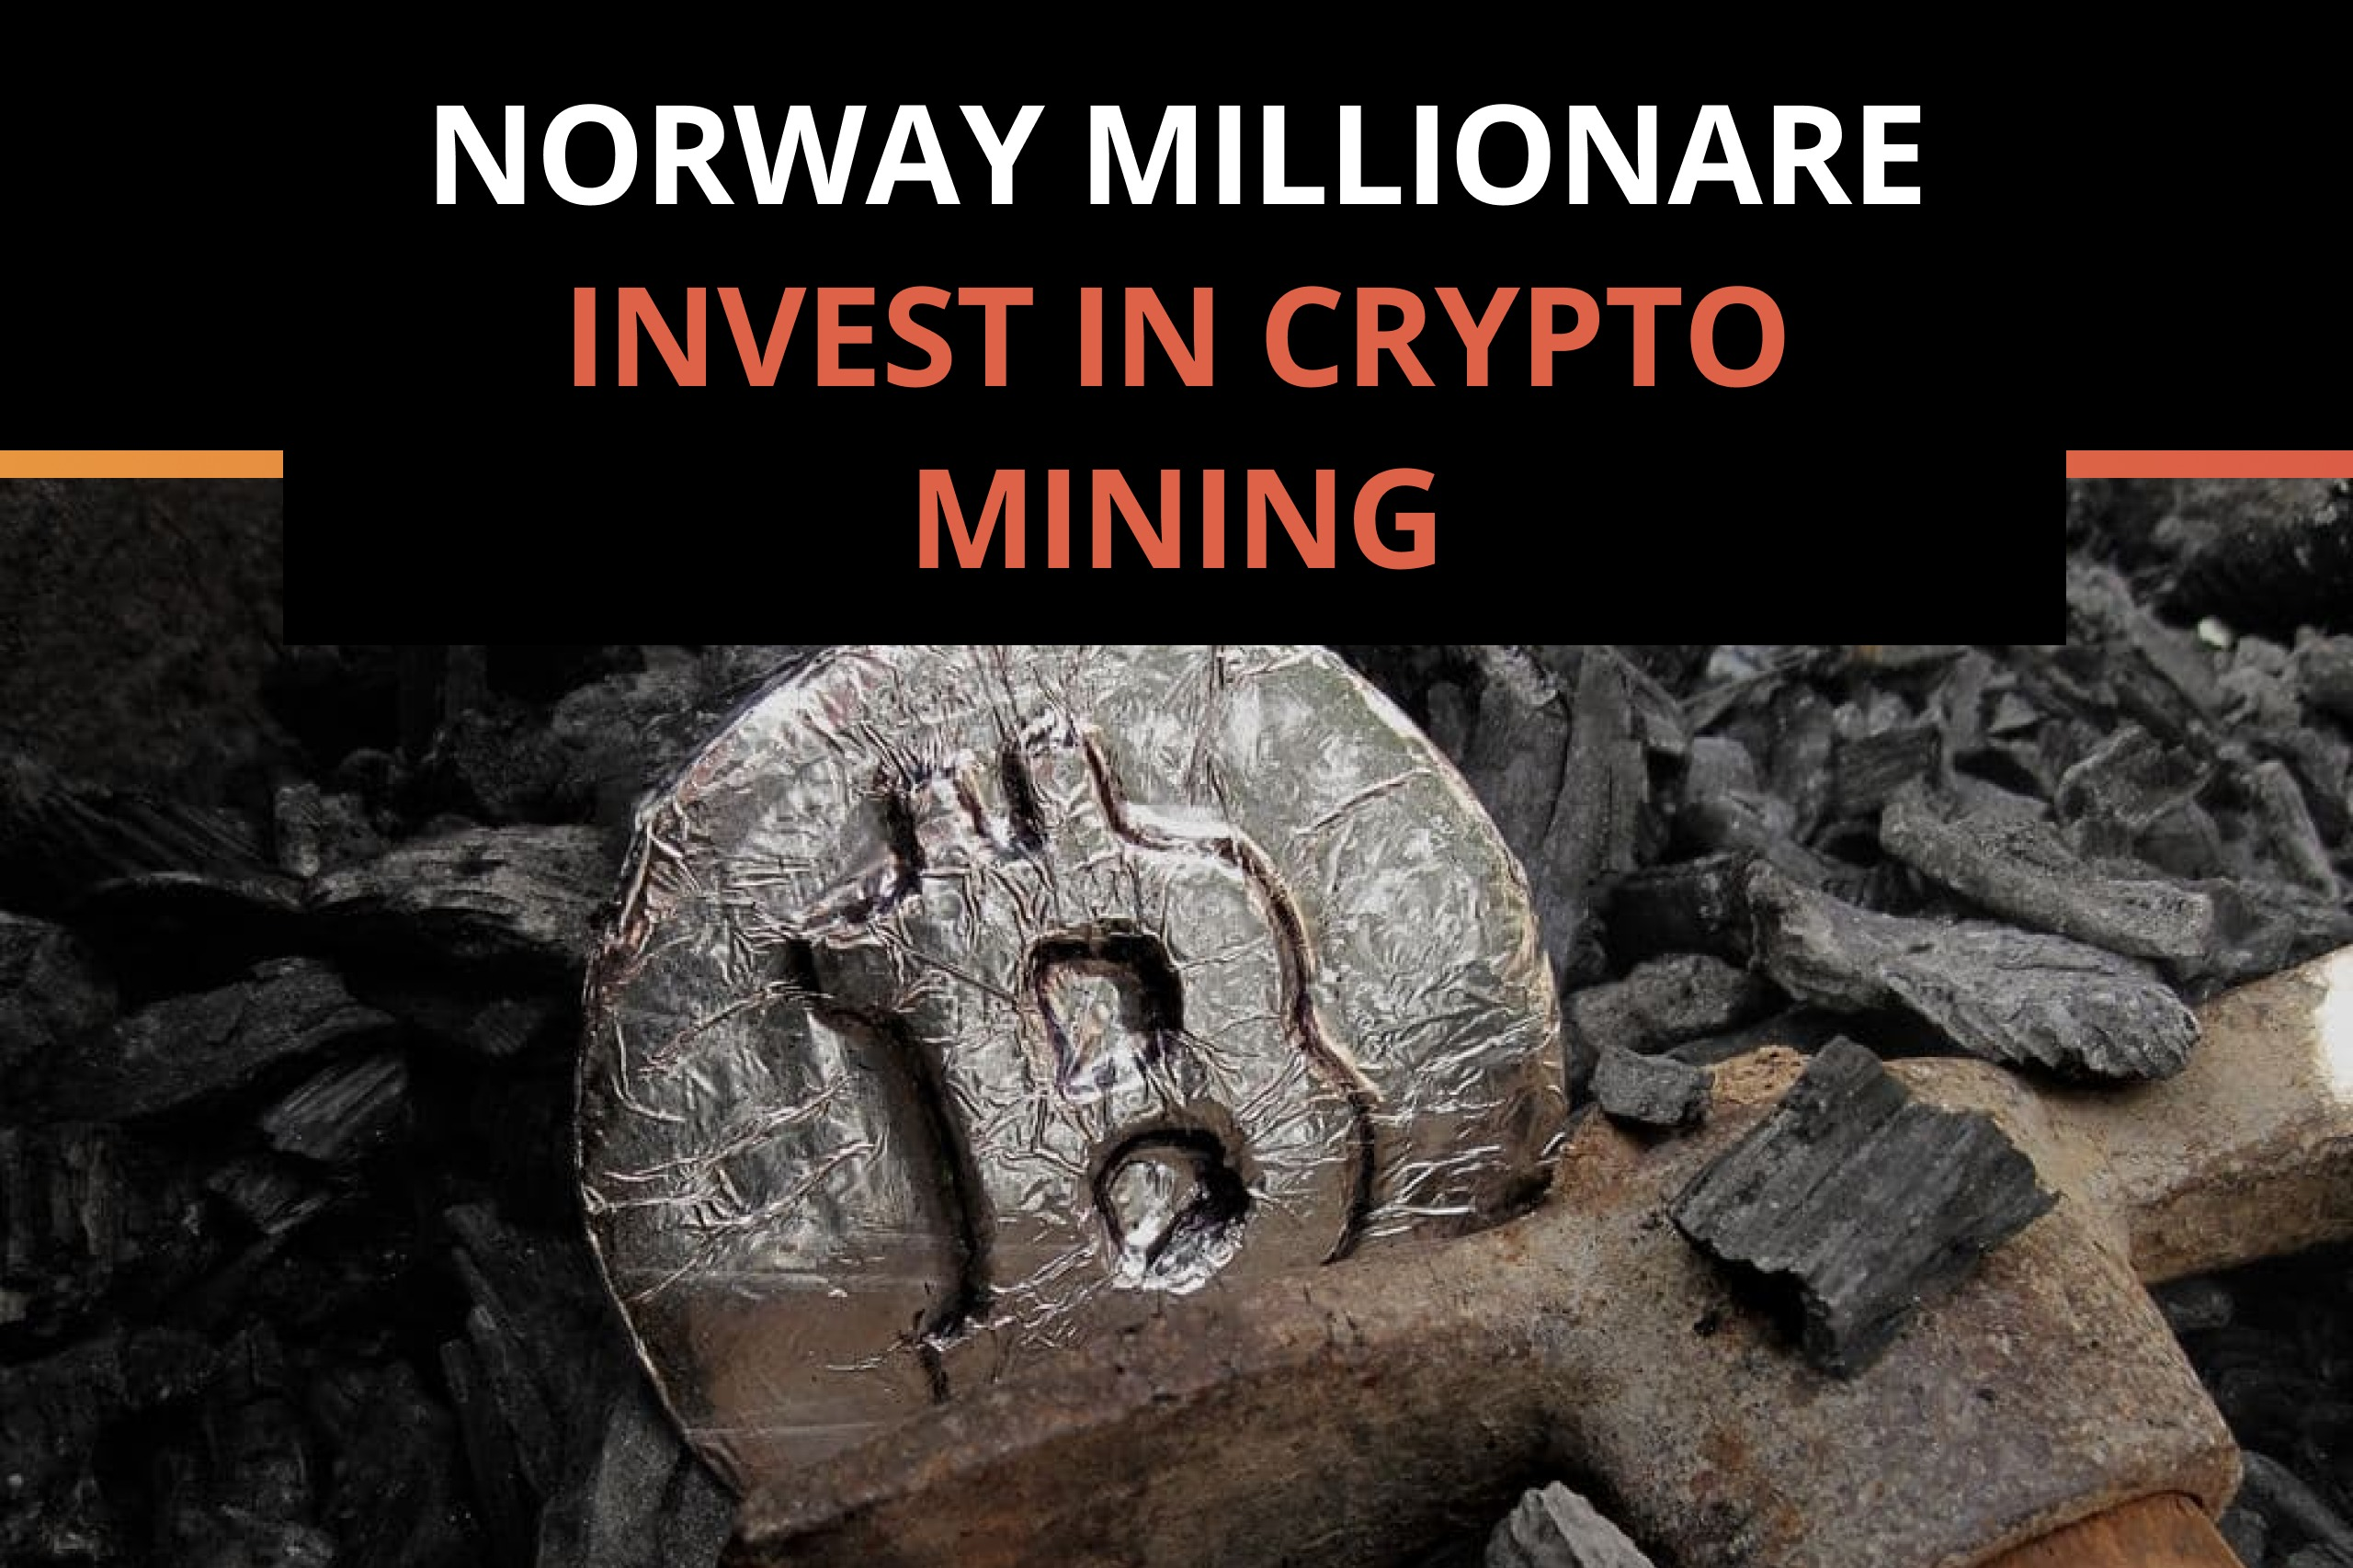 Norwegian Hedge Fund Giant dips into the Crypto